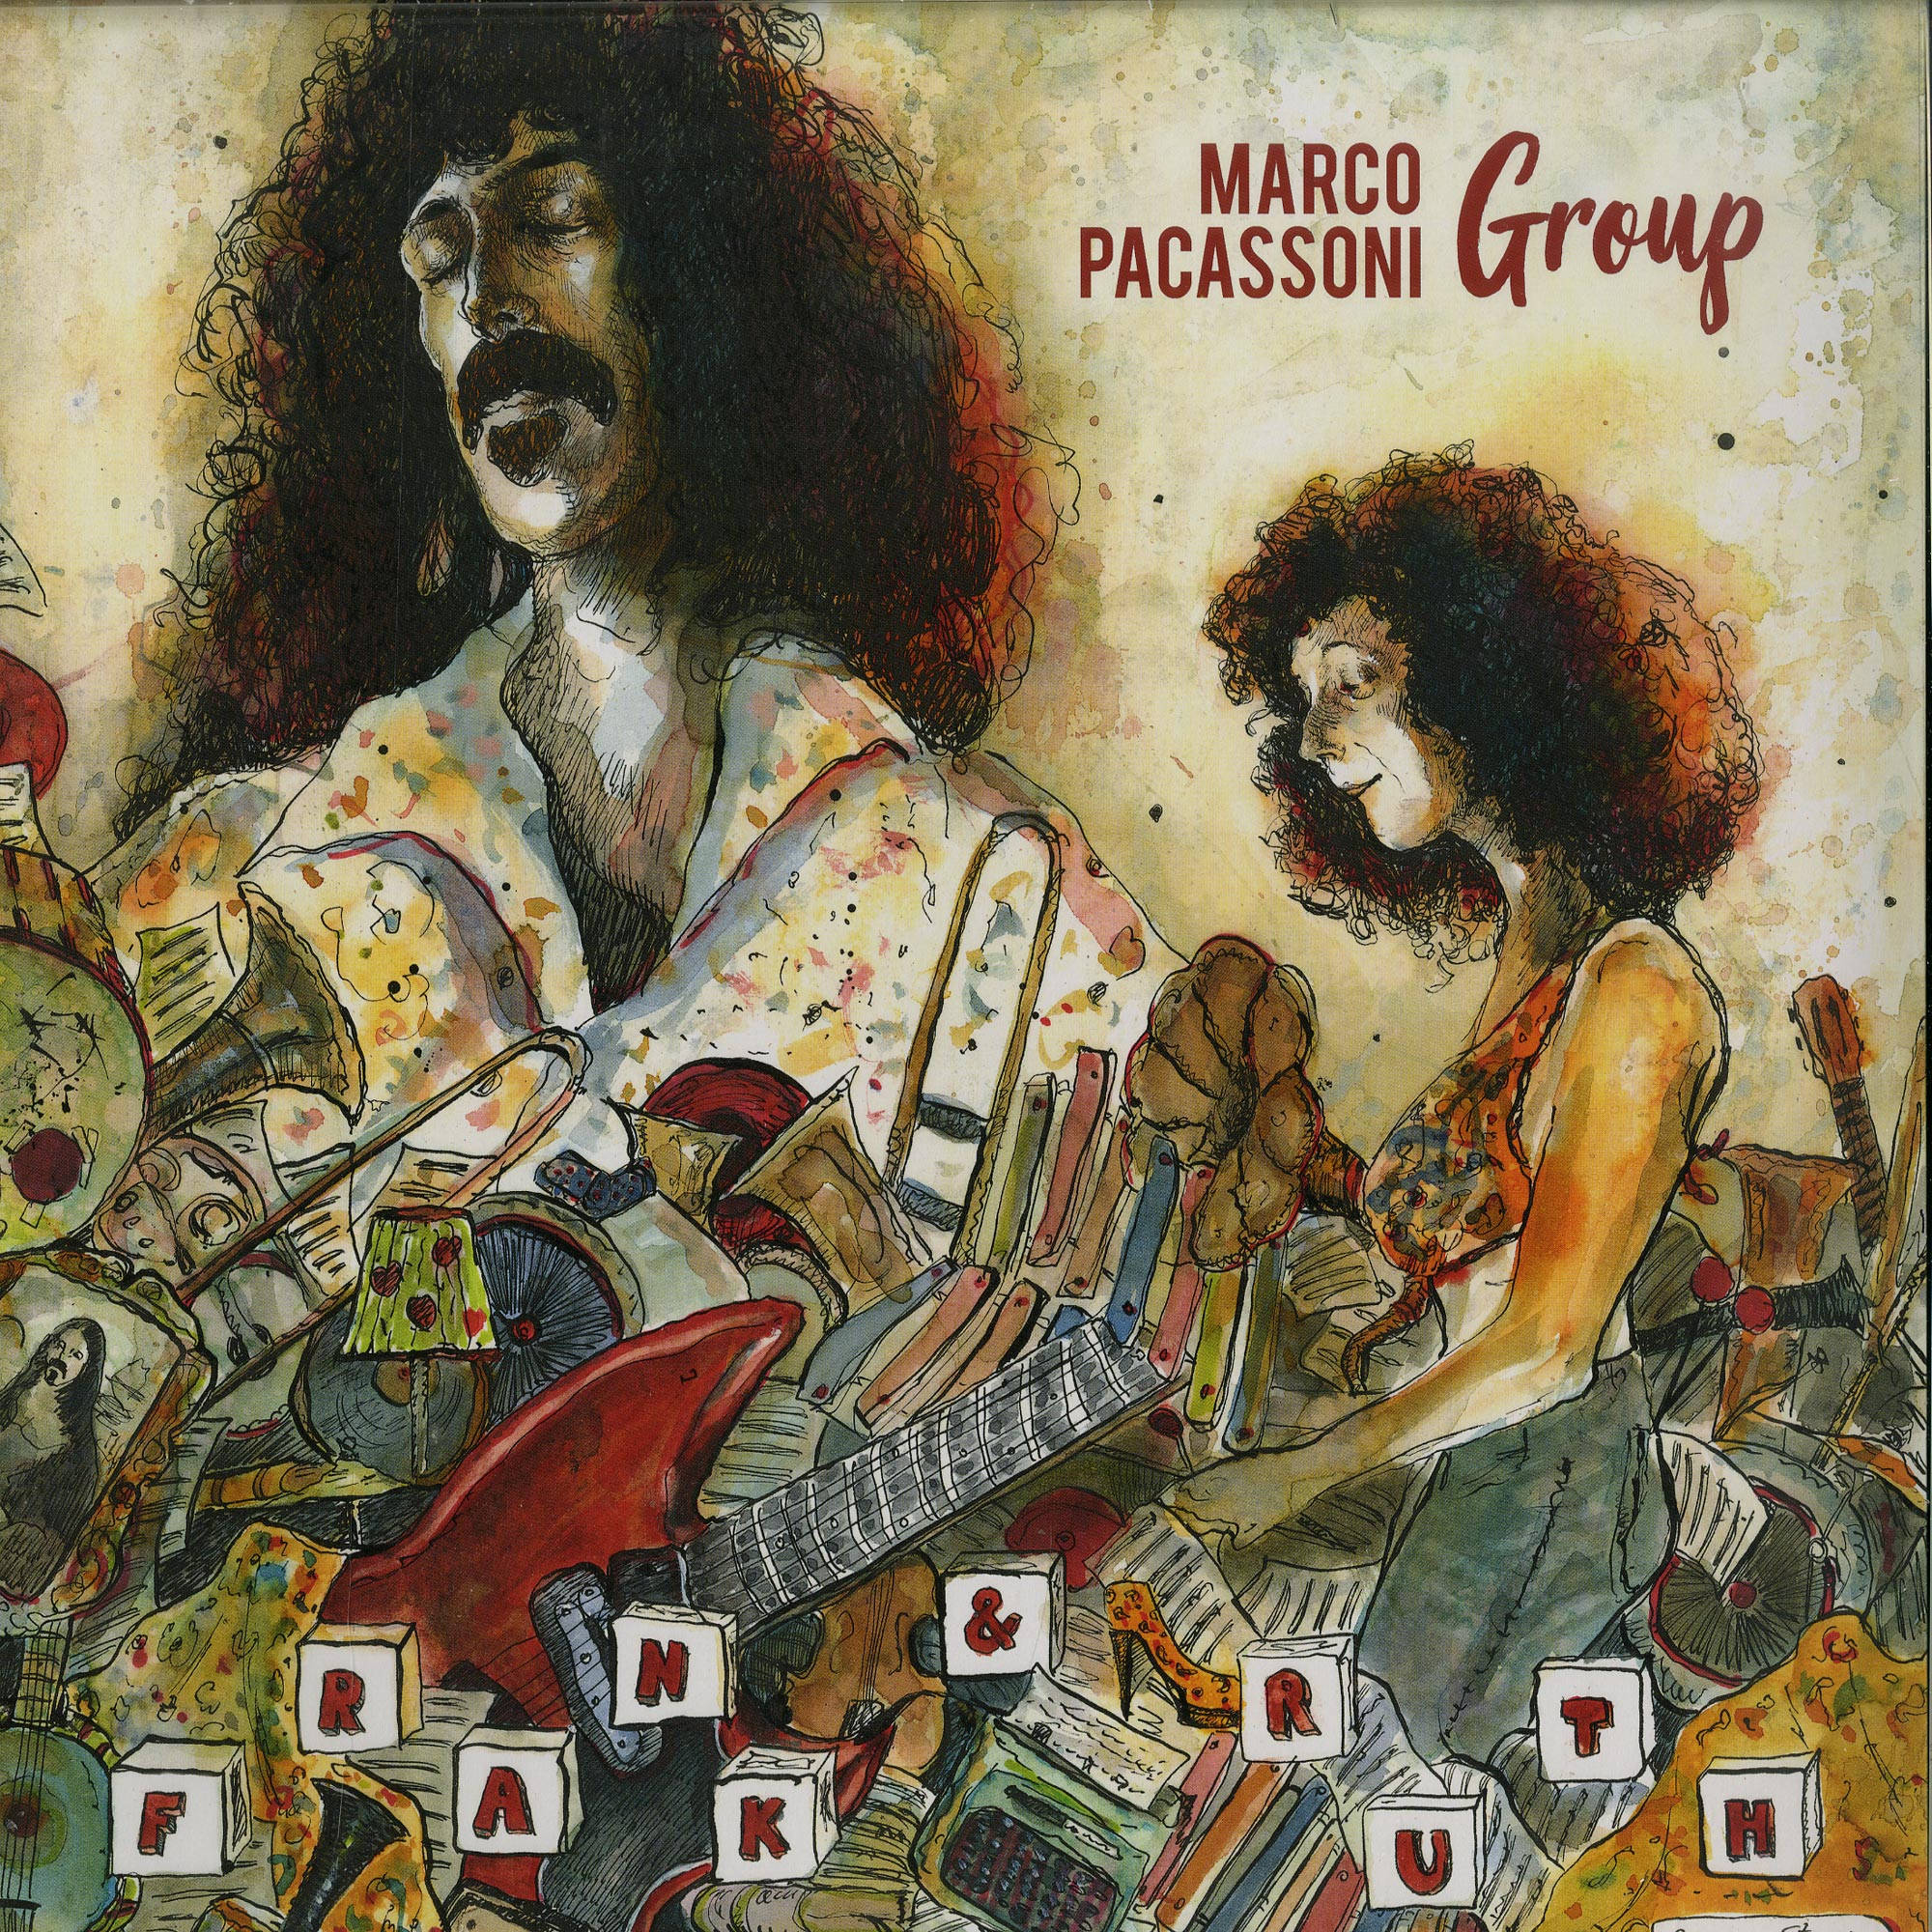 Marco Pacassoni Group - FRANK & RUTH